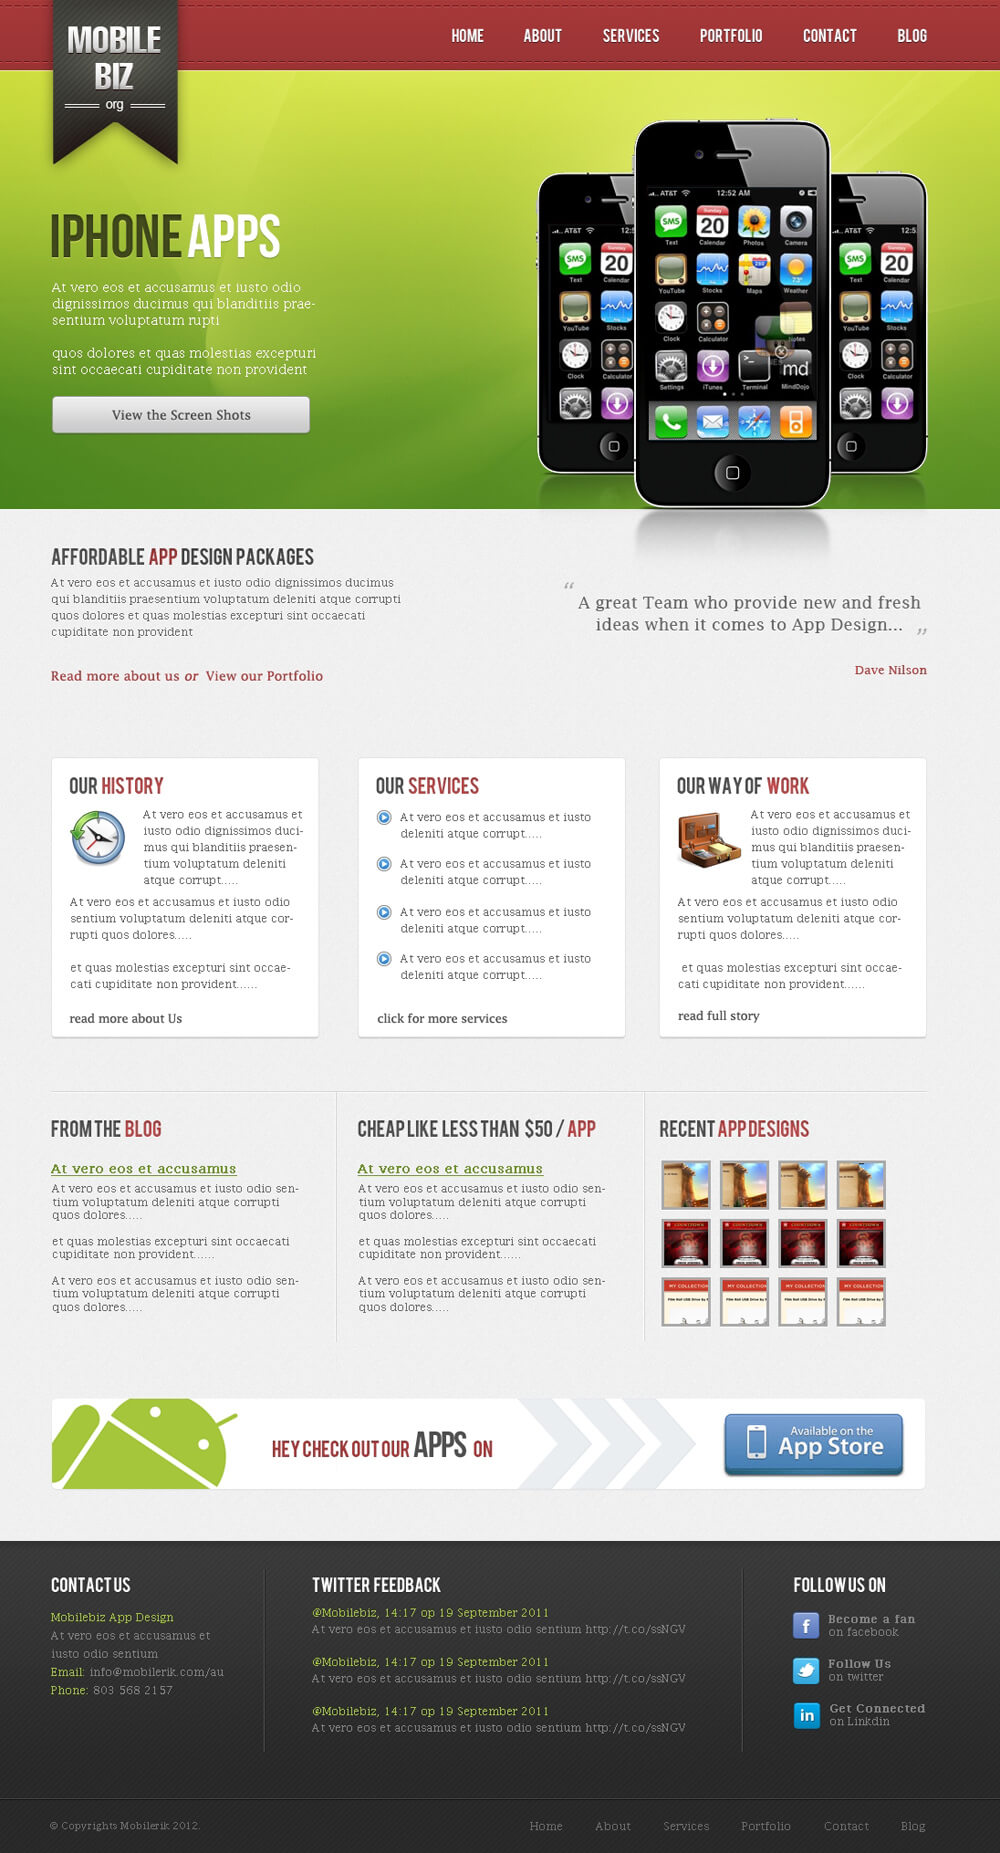 Mobilebiz IPHONE APPS 1 by 0wais